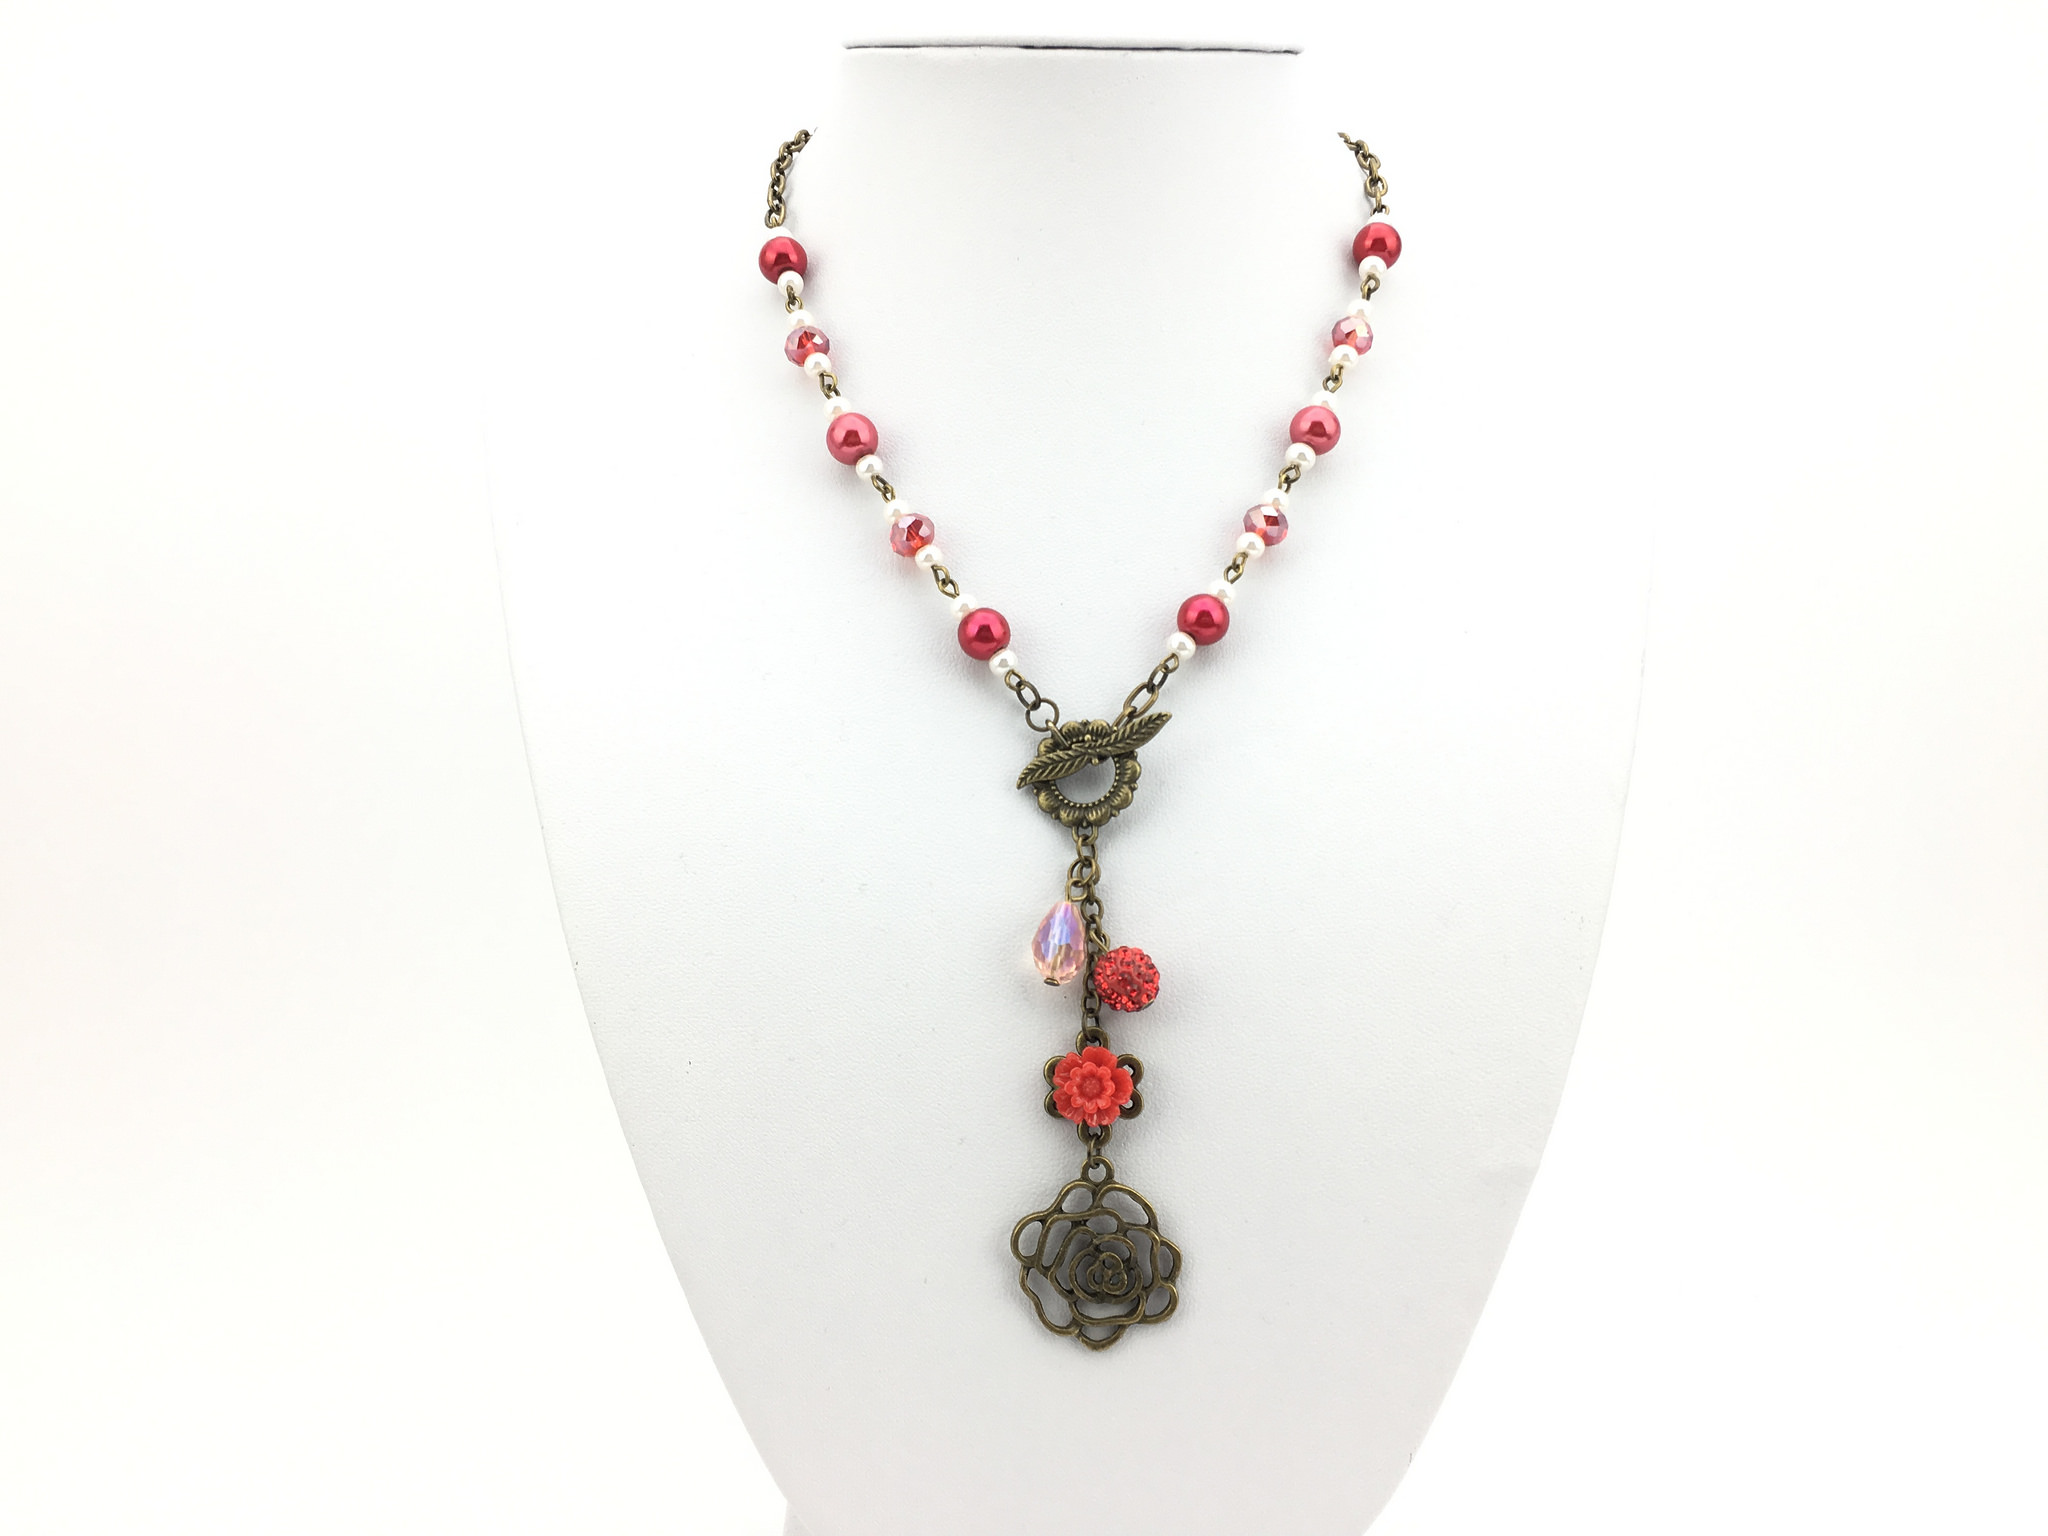 Stunning Handmade Vintage Style Necklace with Red Flower Pendant and Dangling Rhinestone bead and Crystal Front View